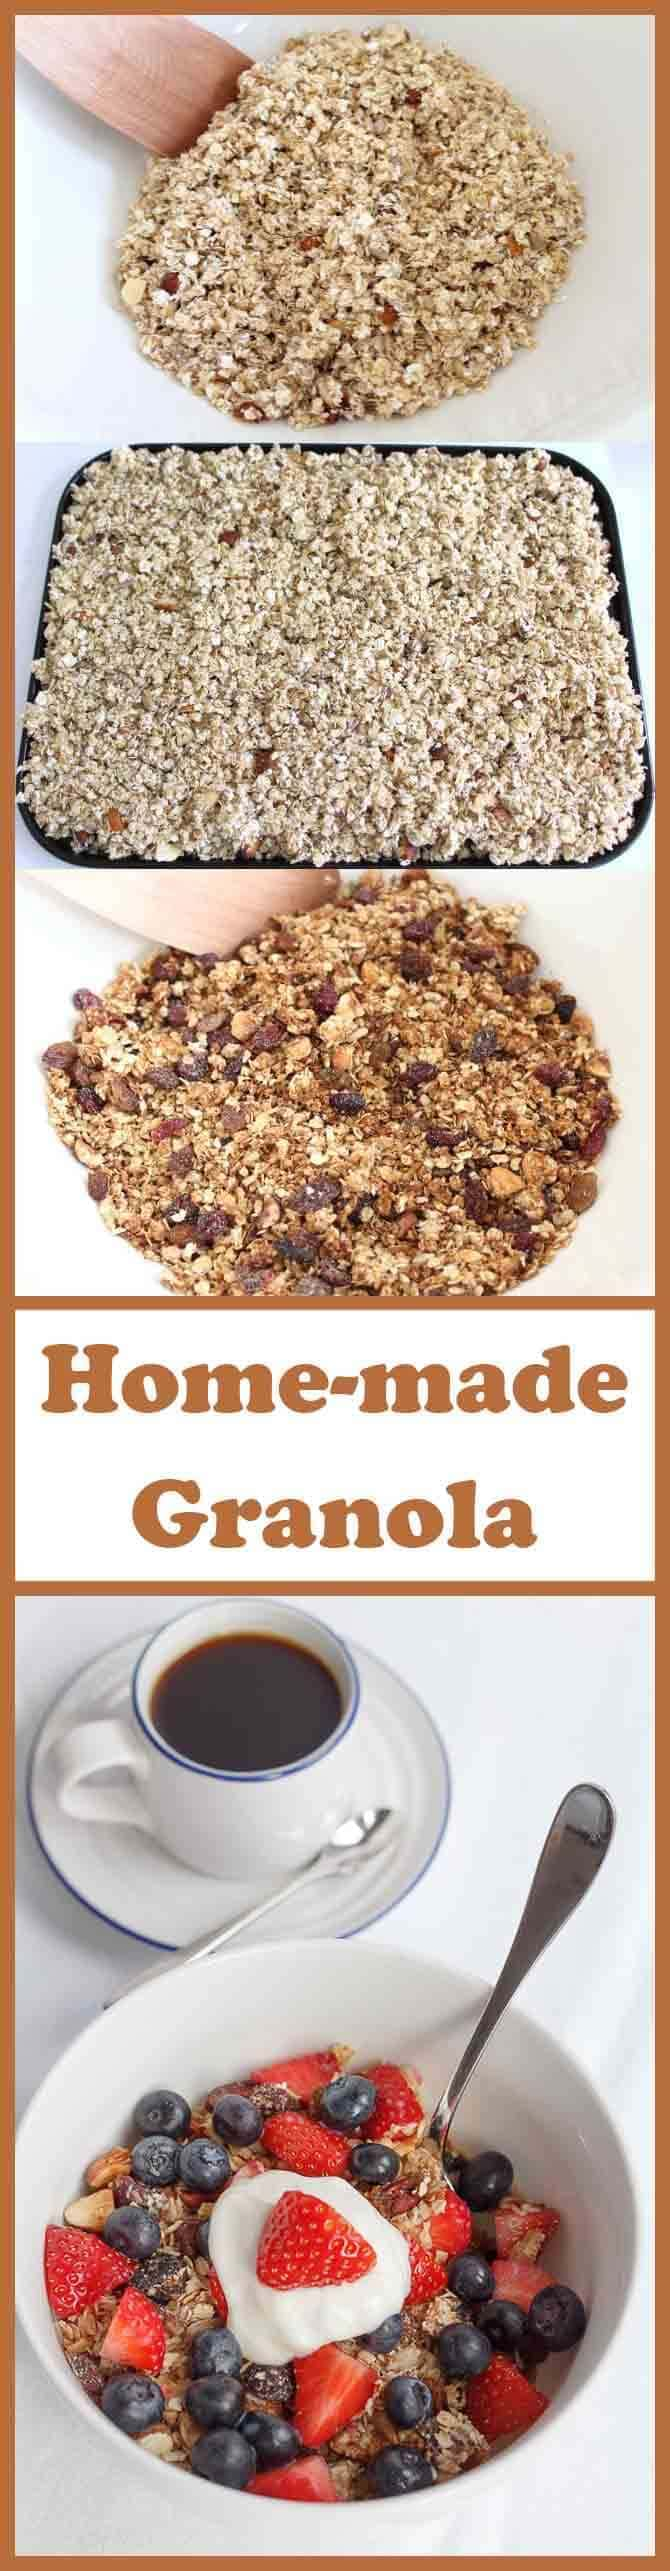 This healthy home-made granola is so easy to make and is only 222 calories per 50g portion making 8 portions, so that's plenty to last you all week! It's delicious to have with skimmed milk or no fat Greek yogurt, especially when topped strawberries or blueberries!